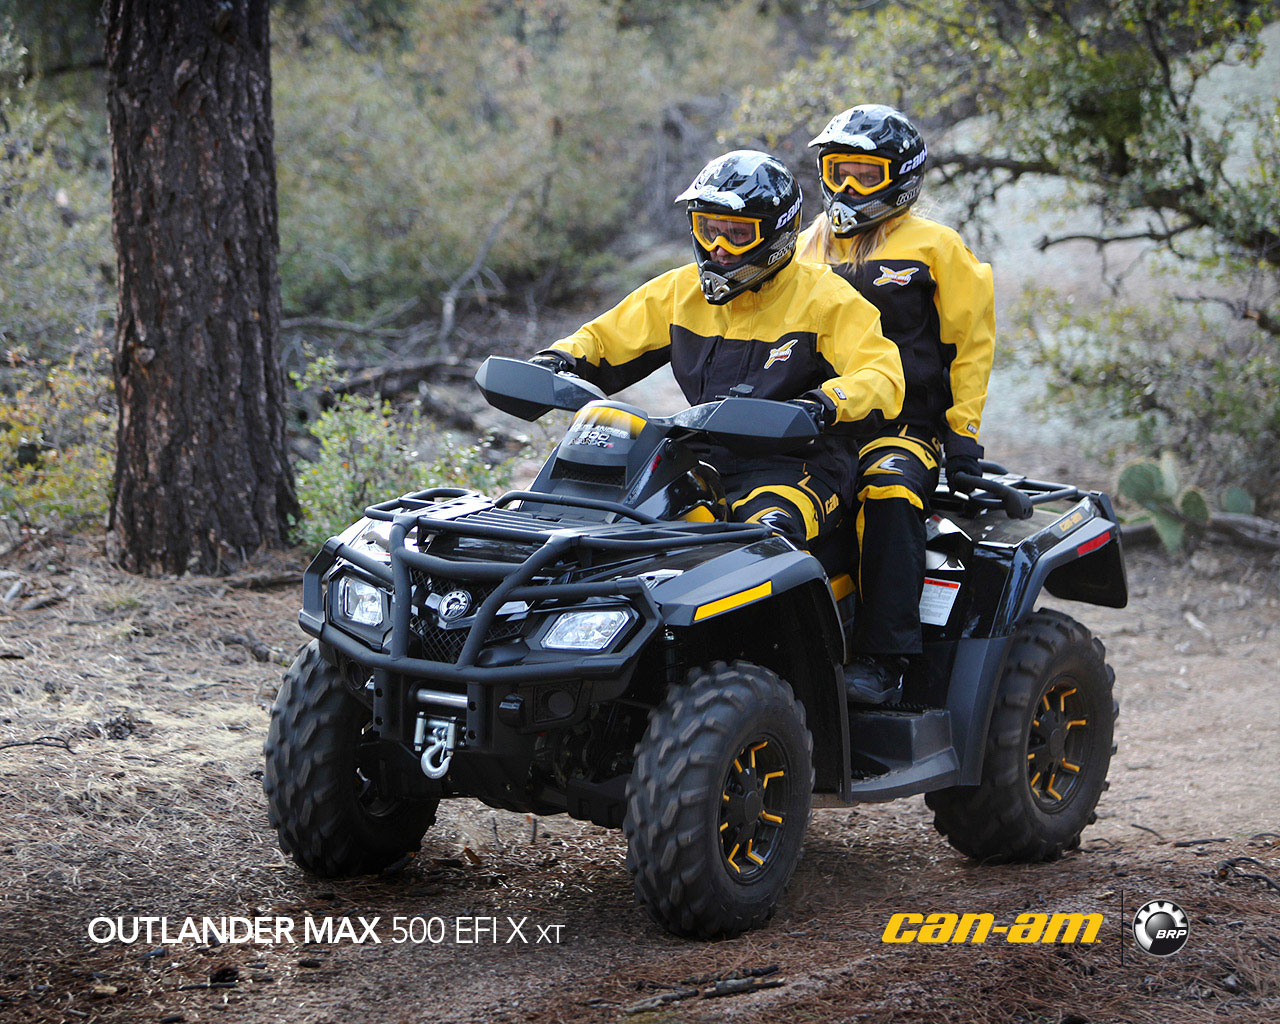 can am brp outlander max 500 xt specs 2010 2011 autoevolution. Black Bedroom Furniture Sets. Home Design Ideas